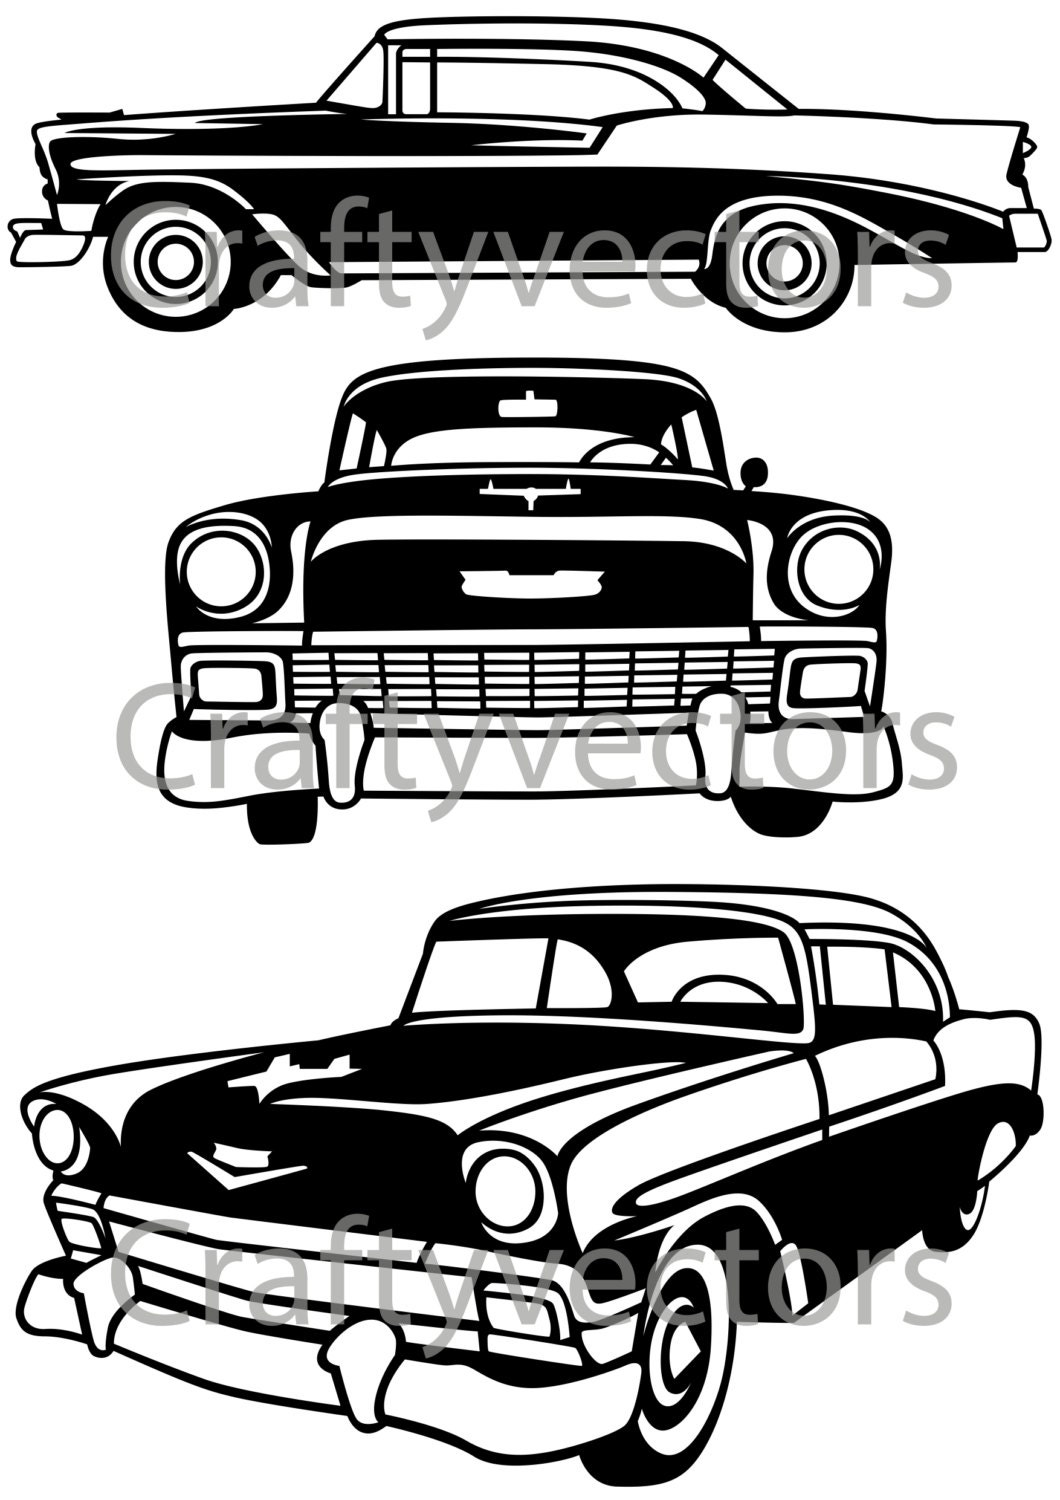 chevrolet bel air 1956 vector file etsy 1959 Chevy Cars 50